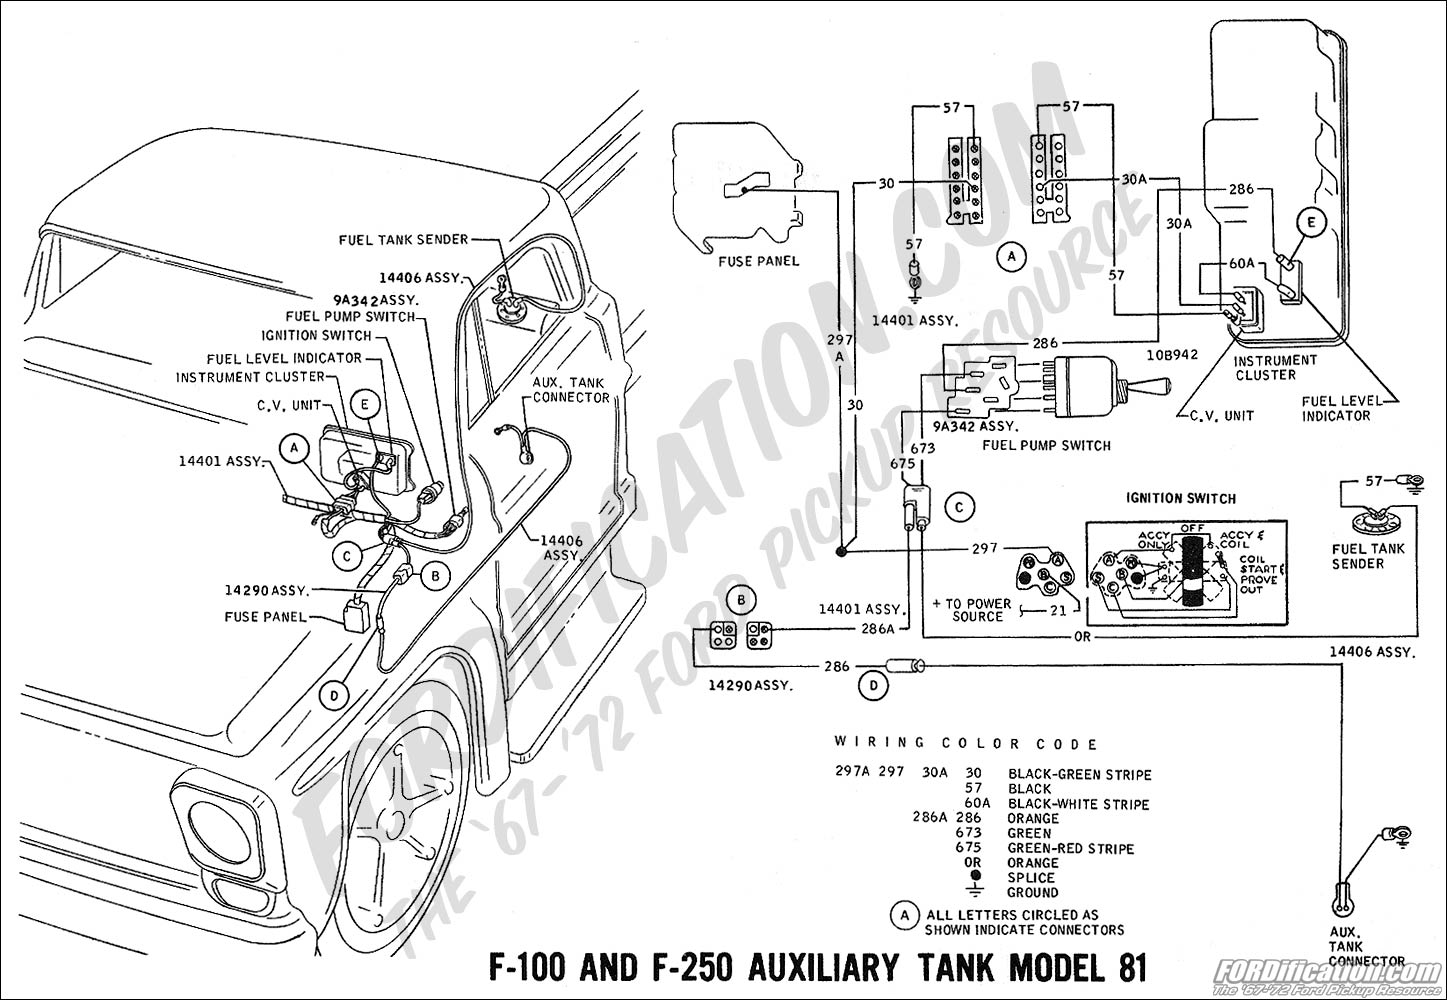 69 ford f100 fuse box | robot-timetab wiring diagram ran -  robot-timetab.rolltec-automotive.eu  wiring diagram library